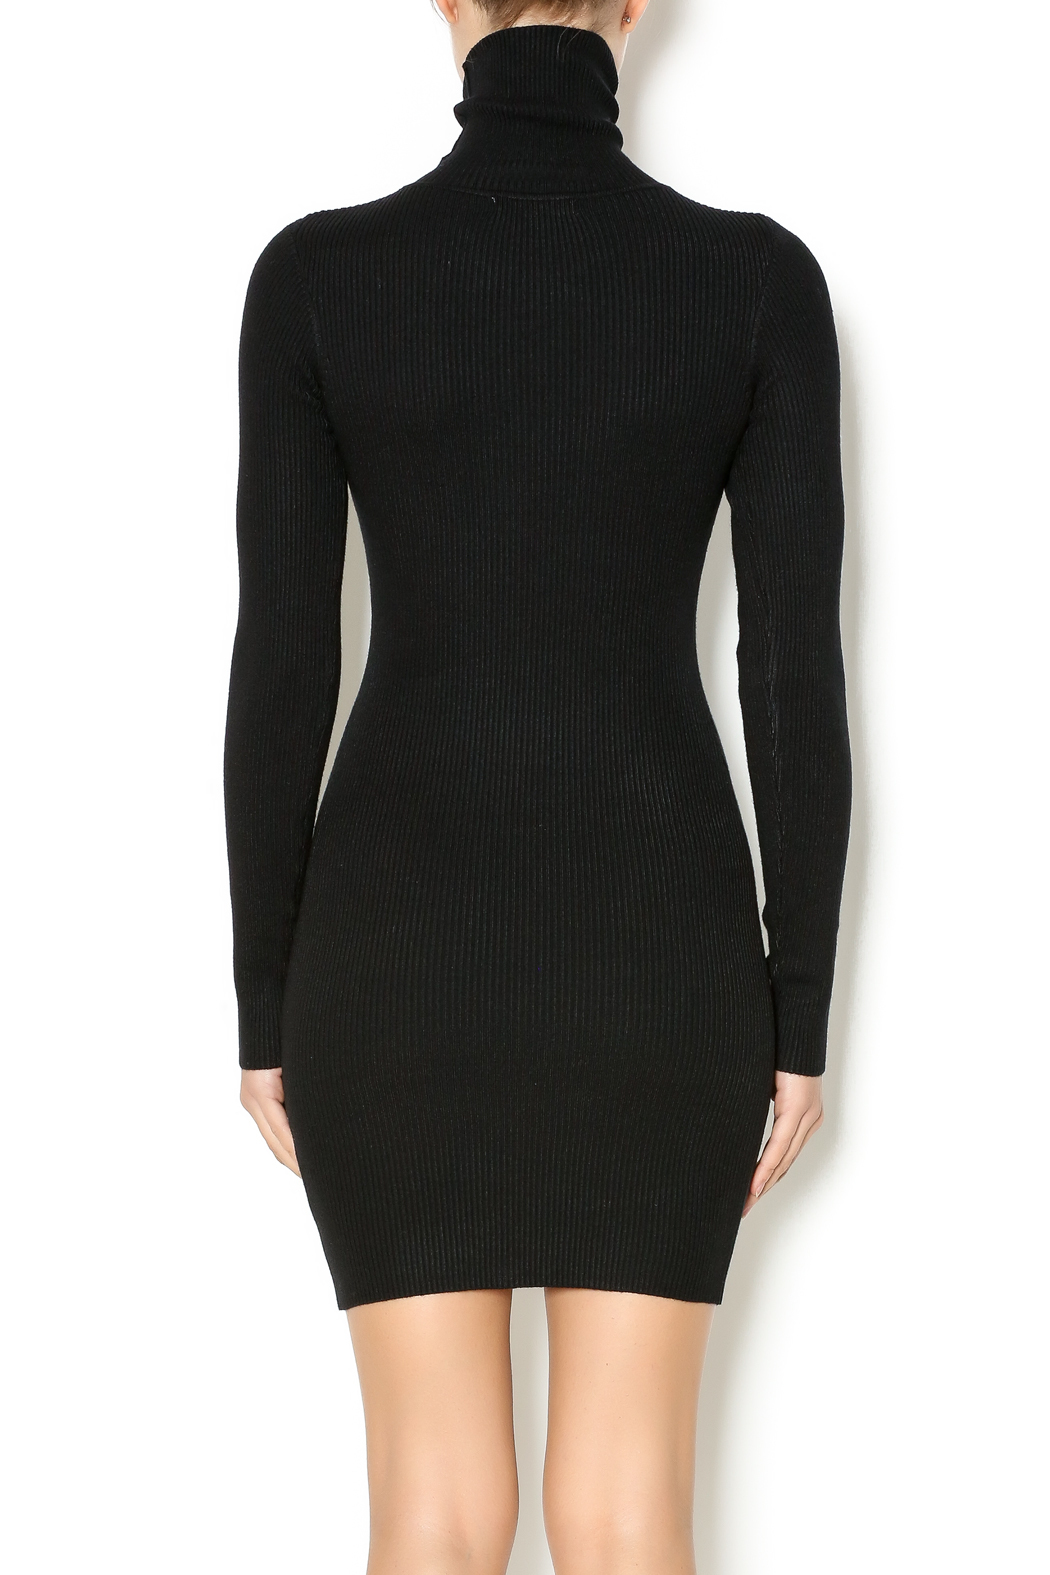 Hera collection Black Turtleneck Sweater Dress from Alabama by Lifted Boutique u2014 Shoptiques